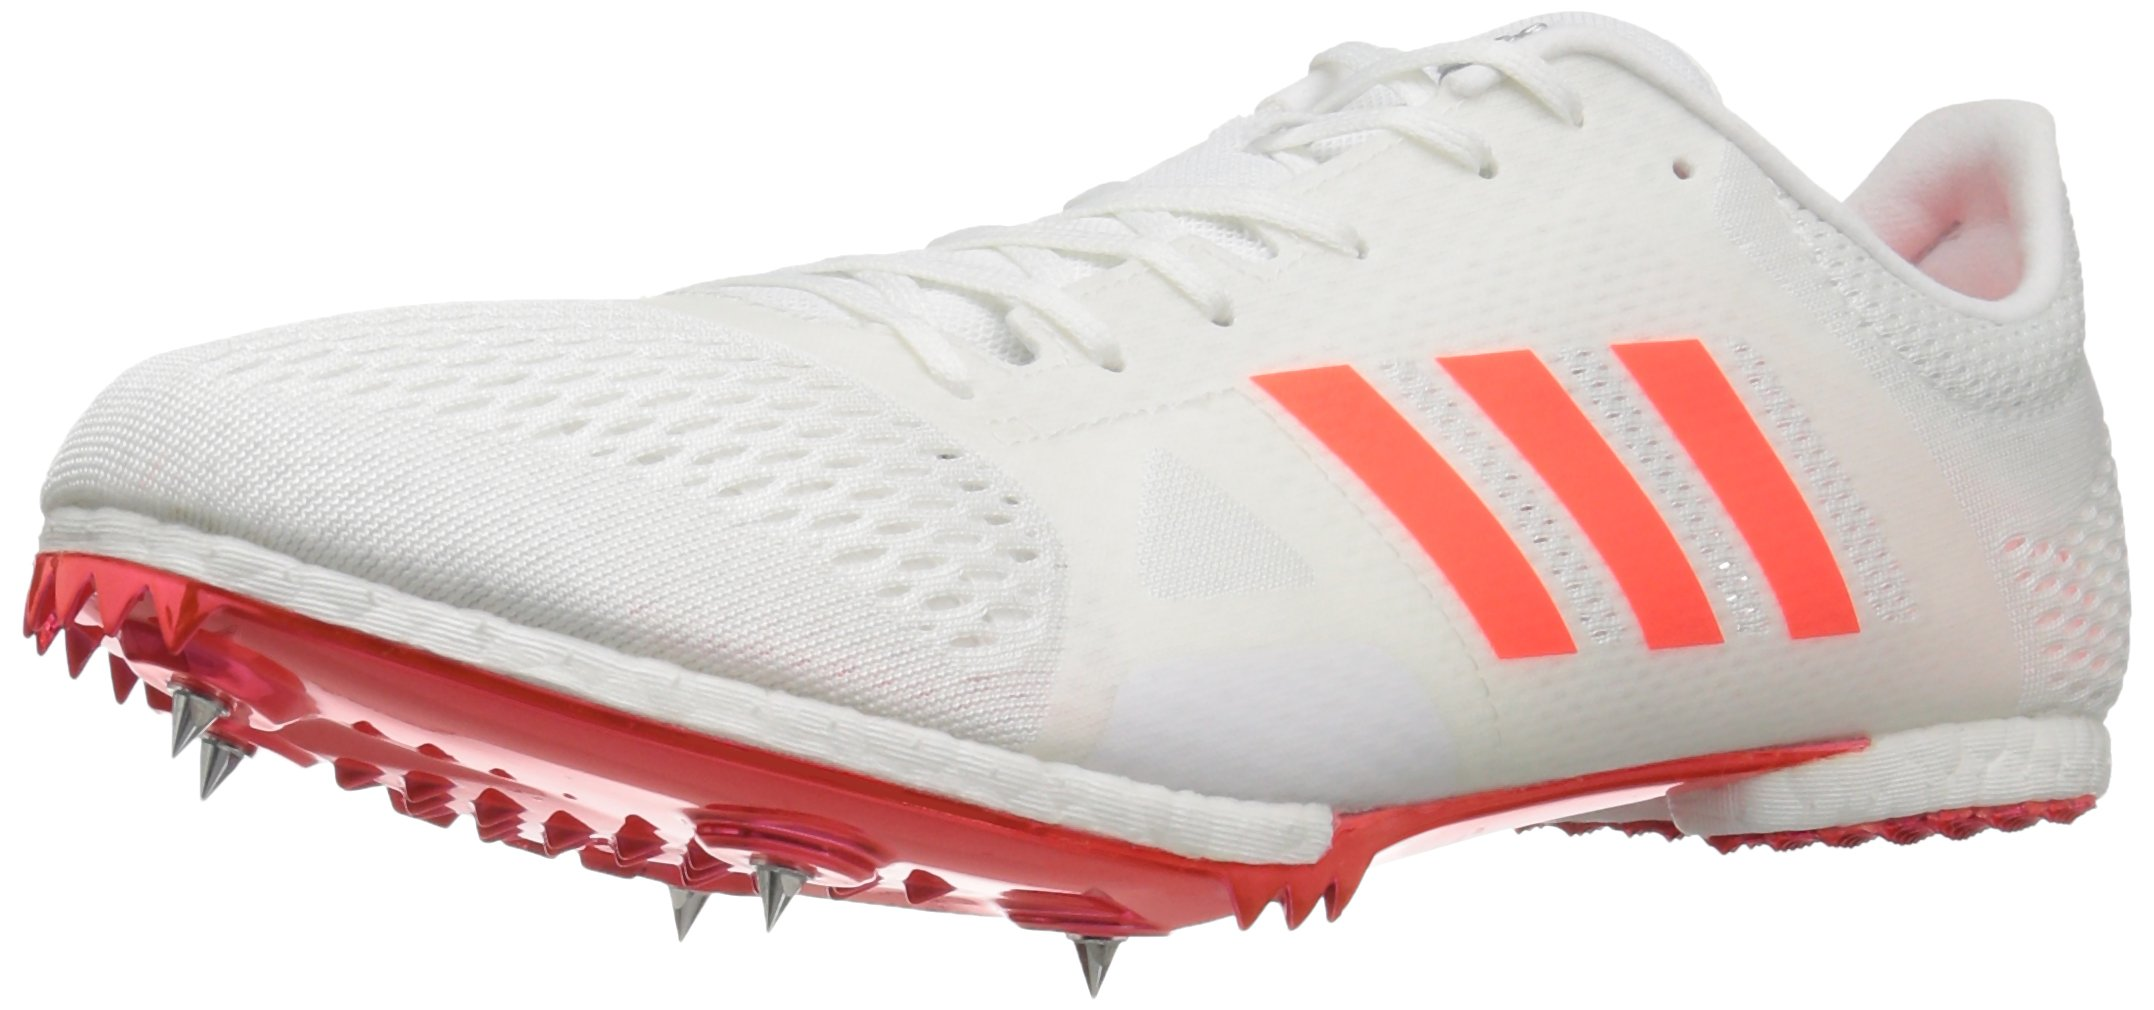 adidas Adizero MD Track Shoe, White/Infrared/Metallic/Silver, 11.5 M US by adidas